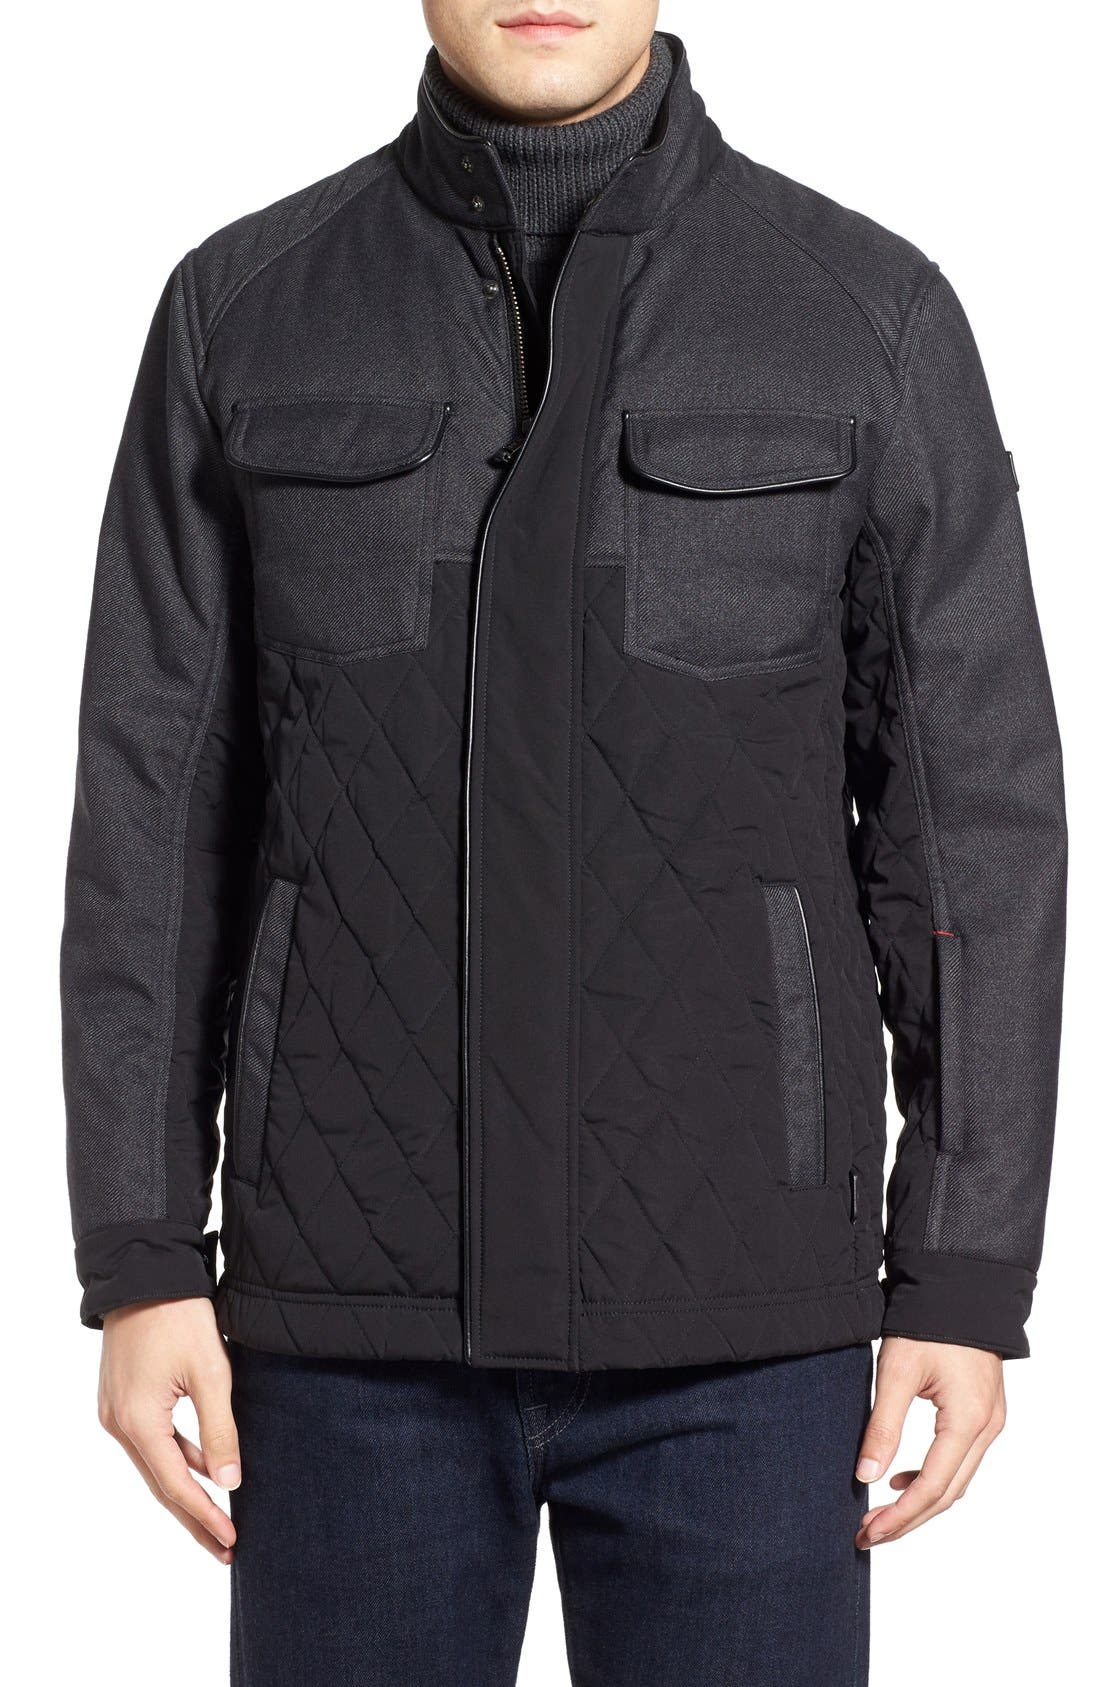 'Heritage' Quilted Jacket,                             Main thumbnail 1, color,                             001